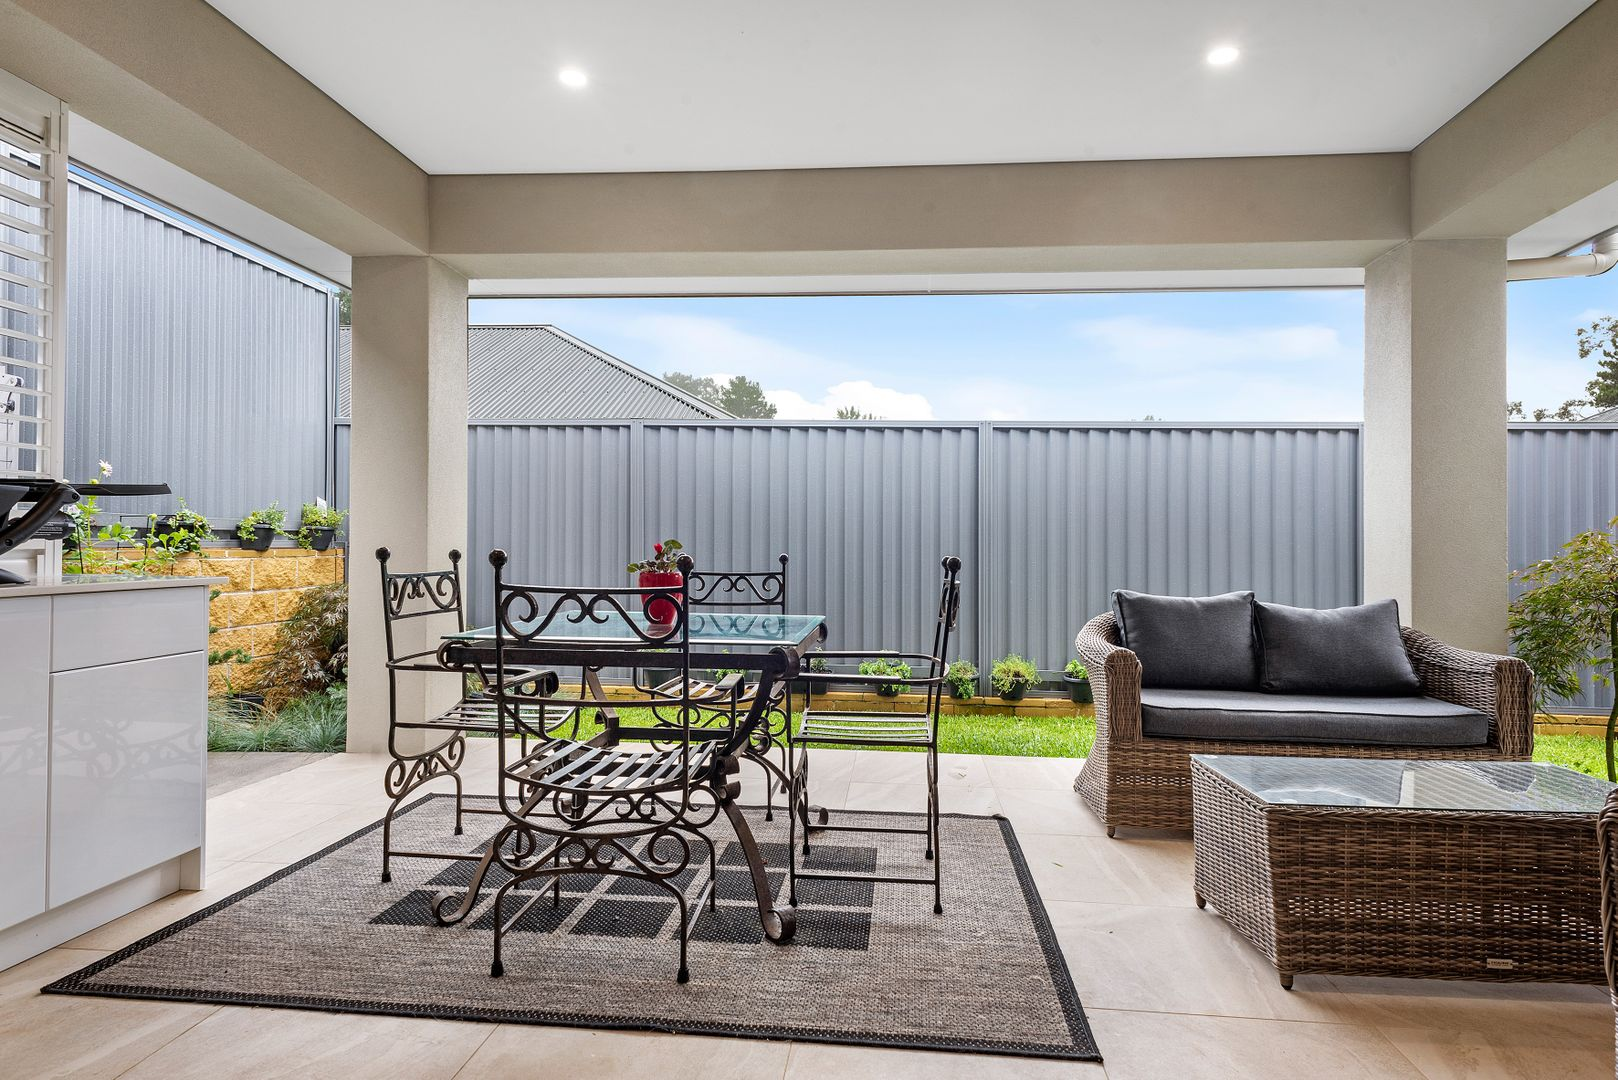 8/41-45 Cascade St, Wentworth Falls NSW 2782, Image 0